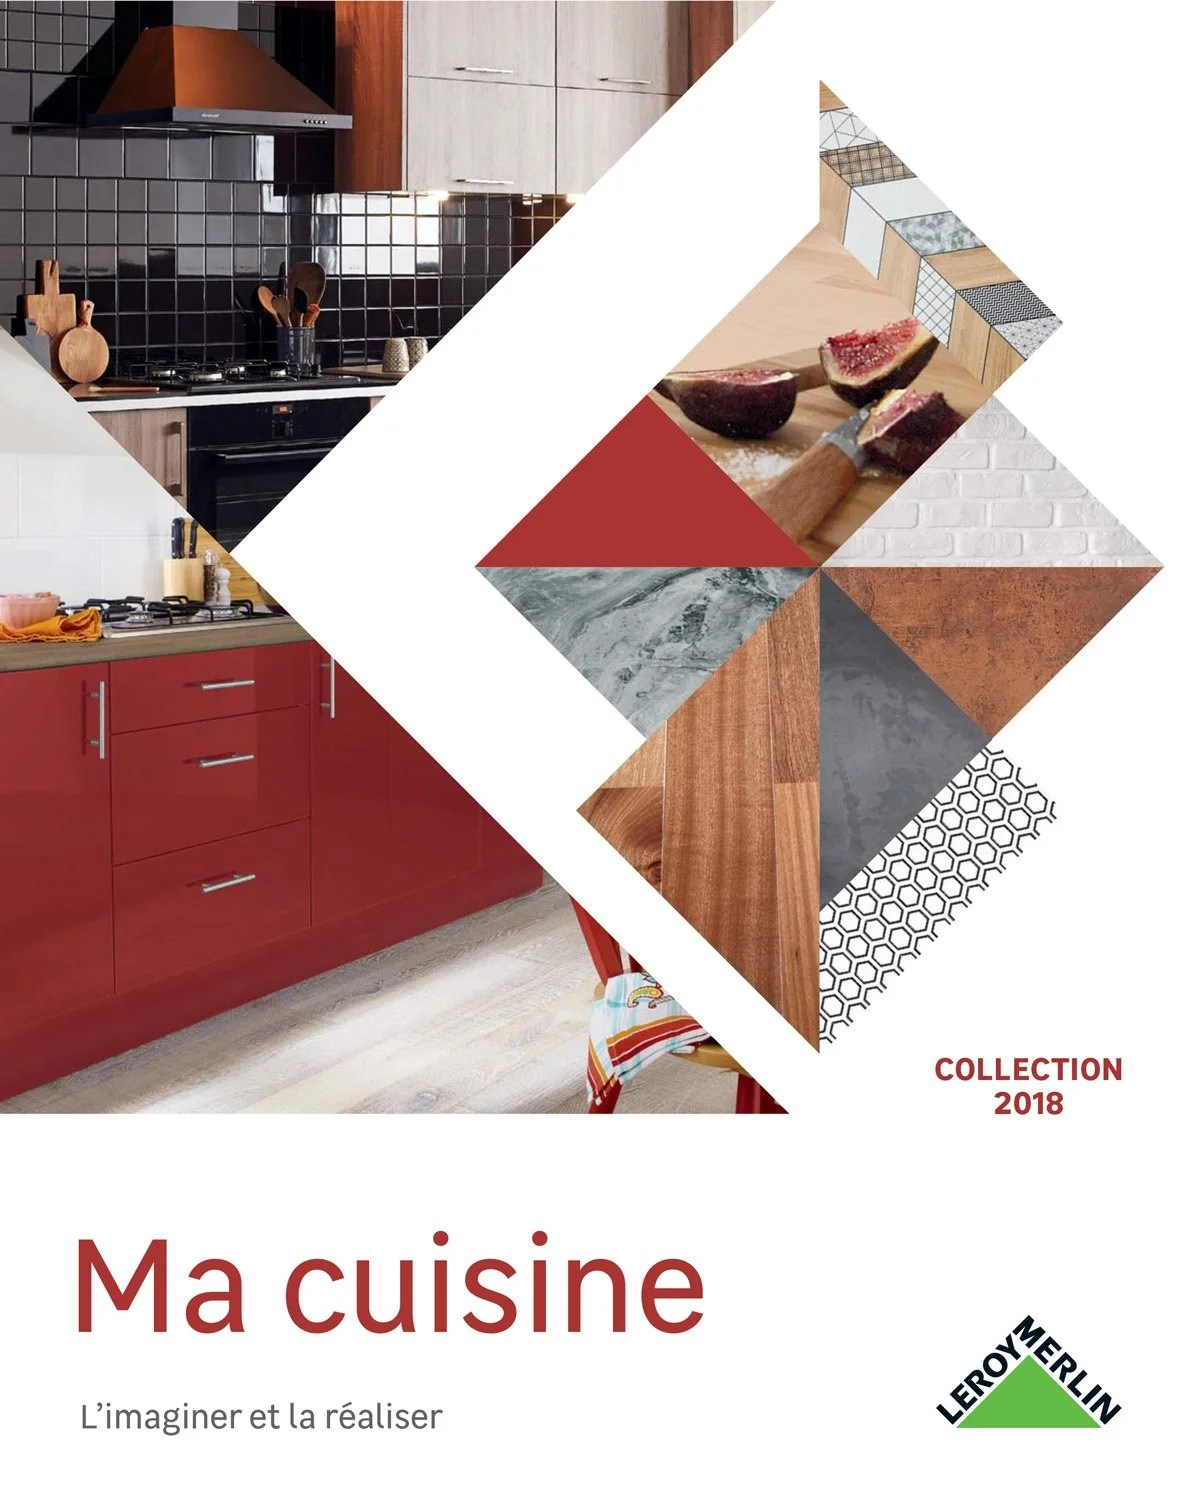 Magasin Cuisine Nancy Ma Cuisine Collection 2018